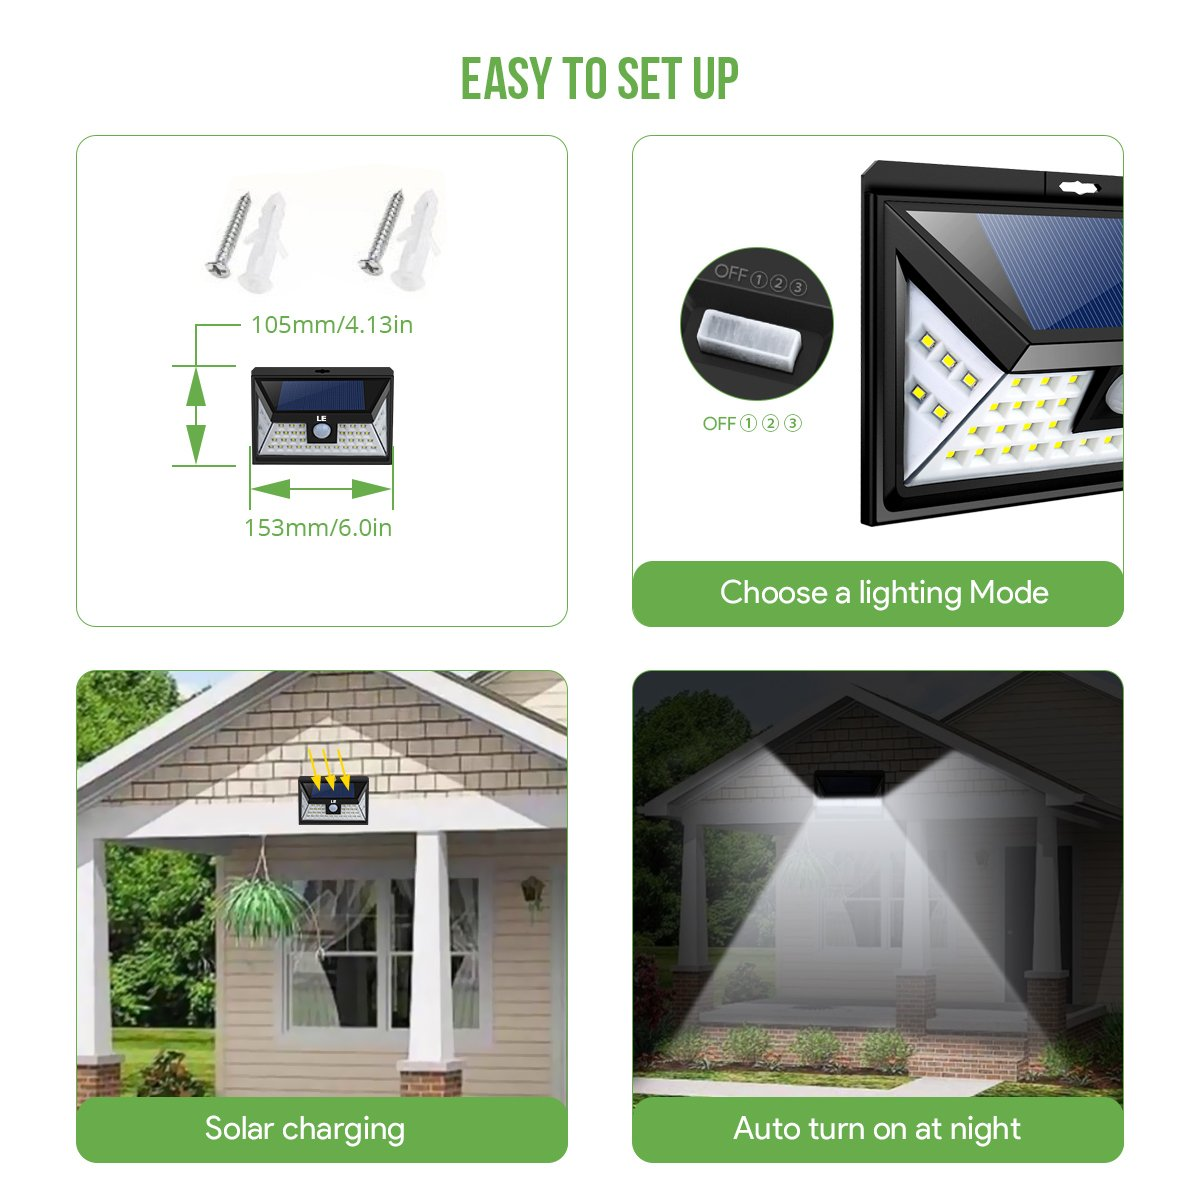 LE 44 LED Solar Powered Lights Outdoor with Motion Sensor, 3 Optional Lighting Modes, 270 Degree Angle, Daylight White 6000K, 4W 550LM, for Garden, Fence, Driveway, Front Door and More, Pack of 4 by Lighting EVER (Image #5)